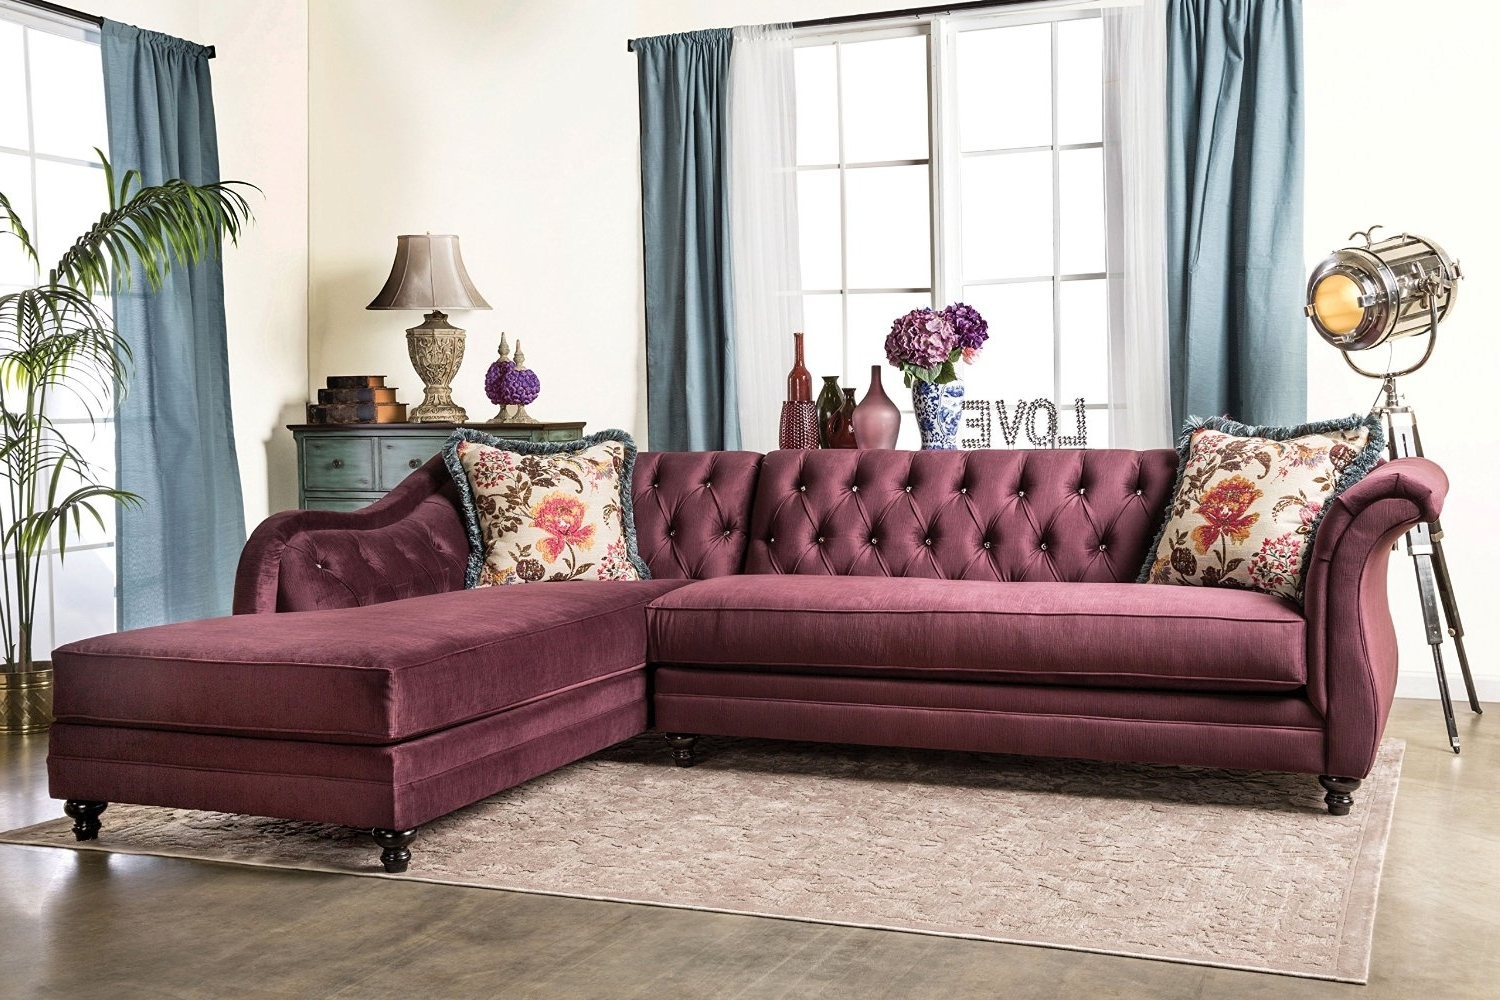 25 Best Chesterfield Sofas To Buy In 2018 Throughout Widely Used Tufted Leather Chesterfield Sofas (View 14 of 20)